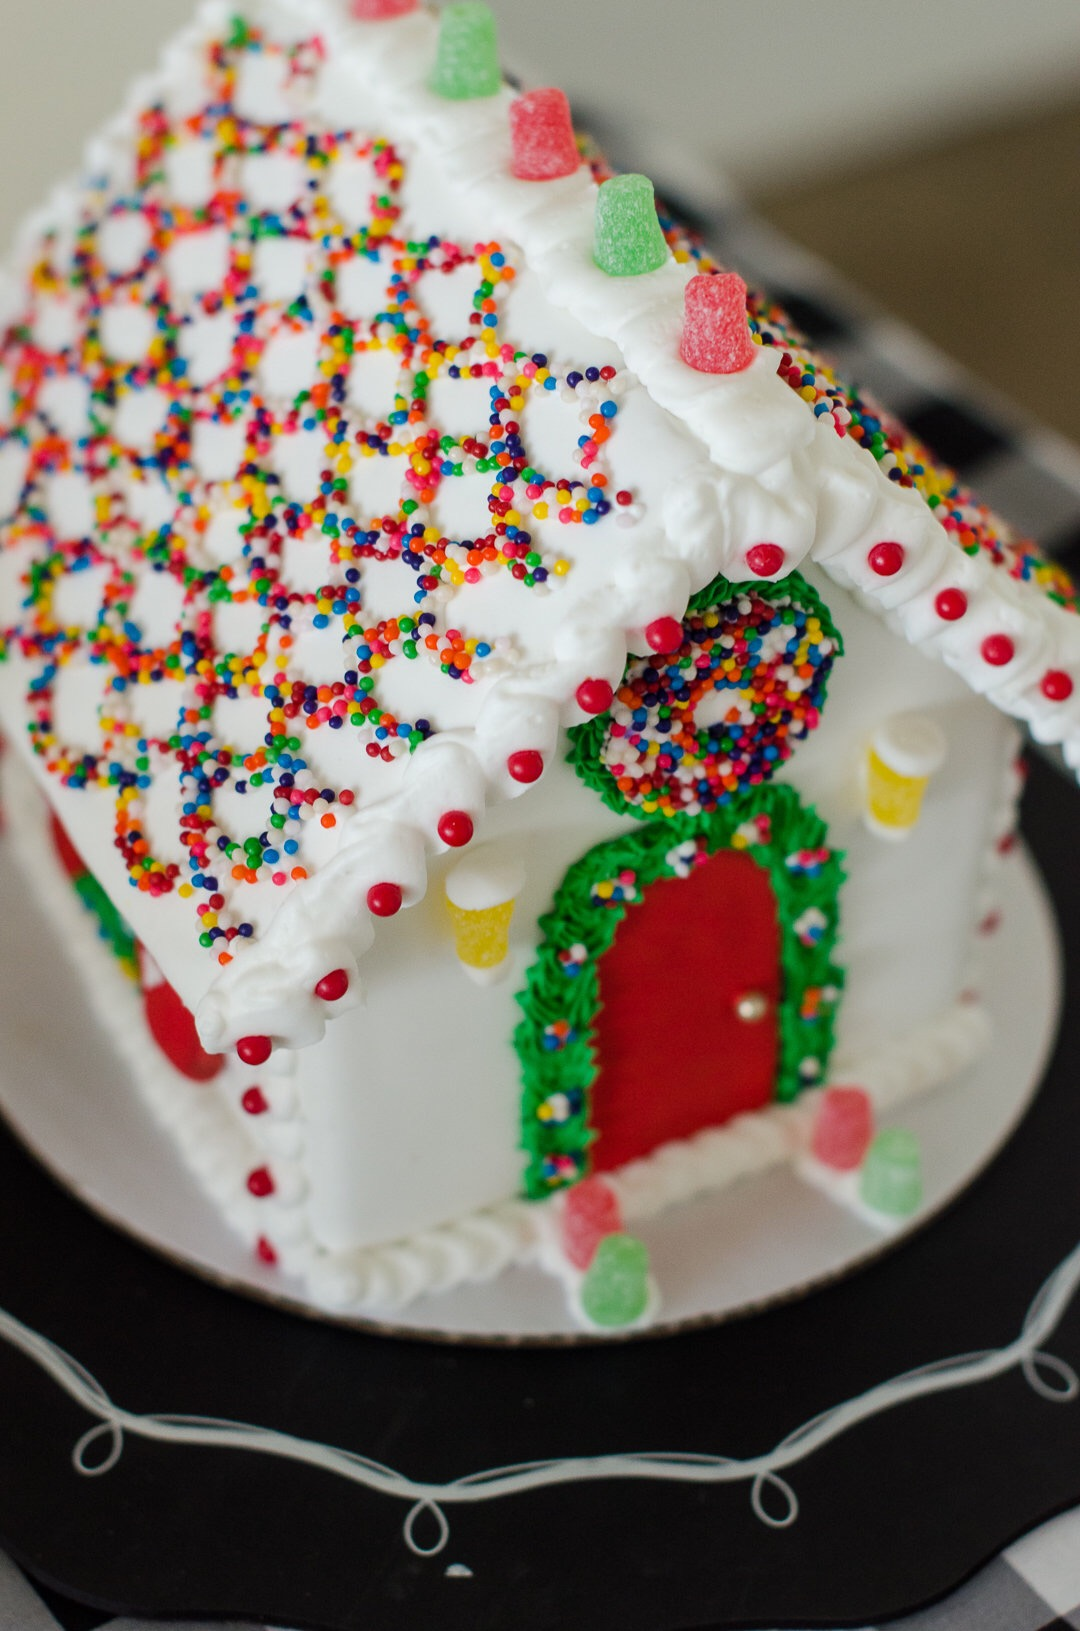 Gingerbread house professionally decorated with nonpareils. See more holiday party inspiration from Austin based party stylist Mint Event Design at www.minteventdesign.com #desserttable #christmasdesserts #holidayparty #holidays #partyideas #christmasparty #holidaypartyideas #gingerbreadhouses